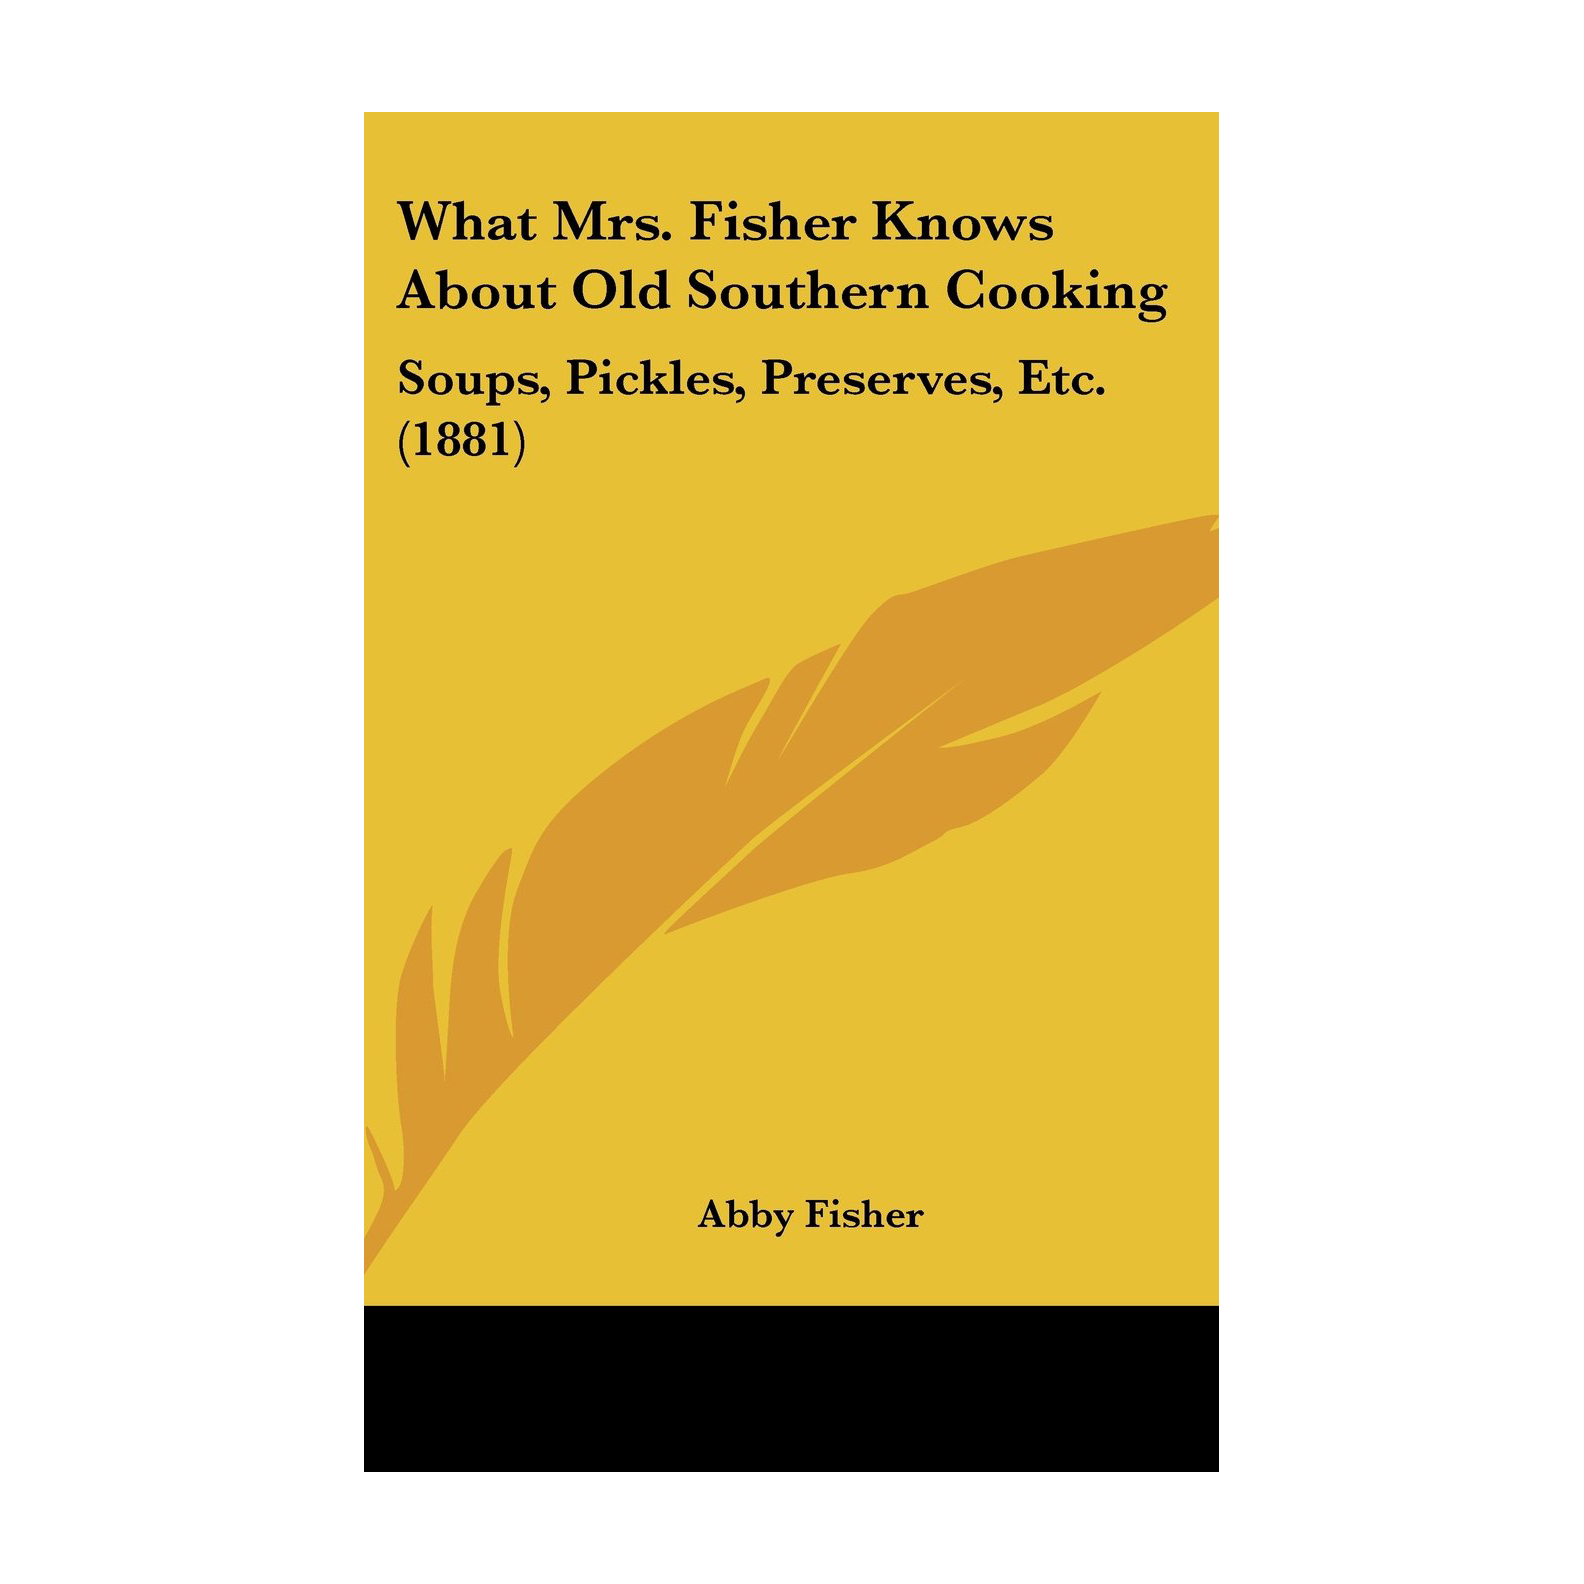 What Mrs. Fisher Knows About Southern Cooking Vintage Cookbook